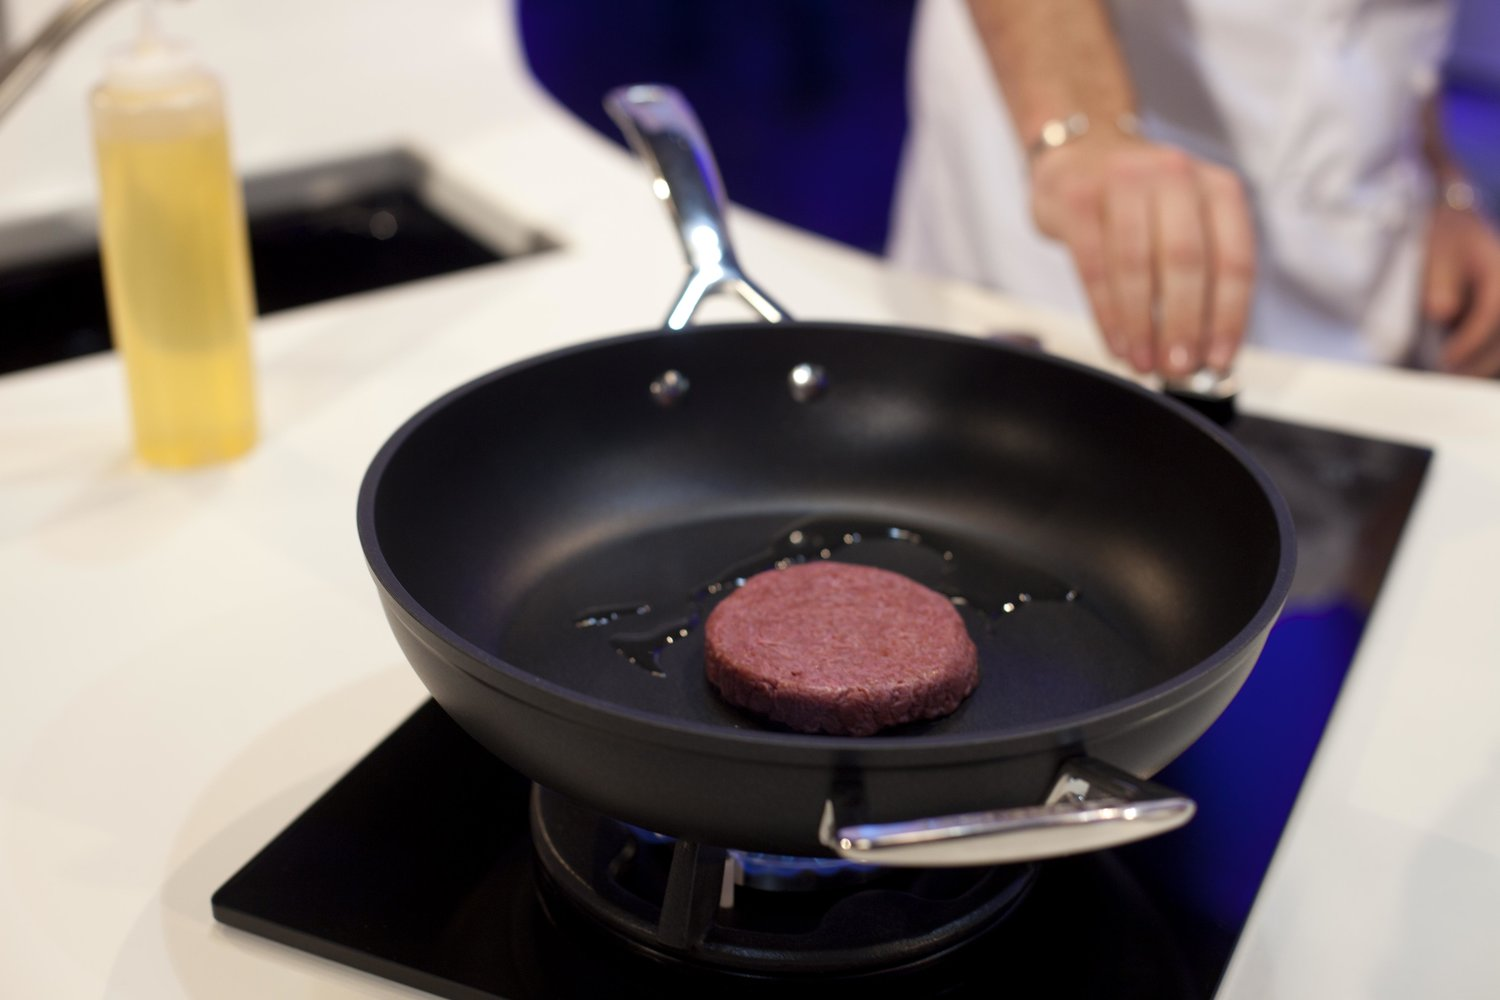 FAQs about 'Cultivated Meat'